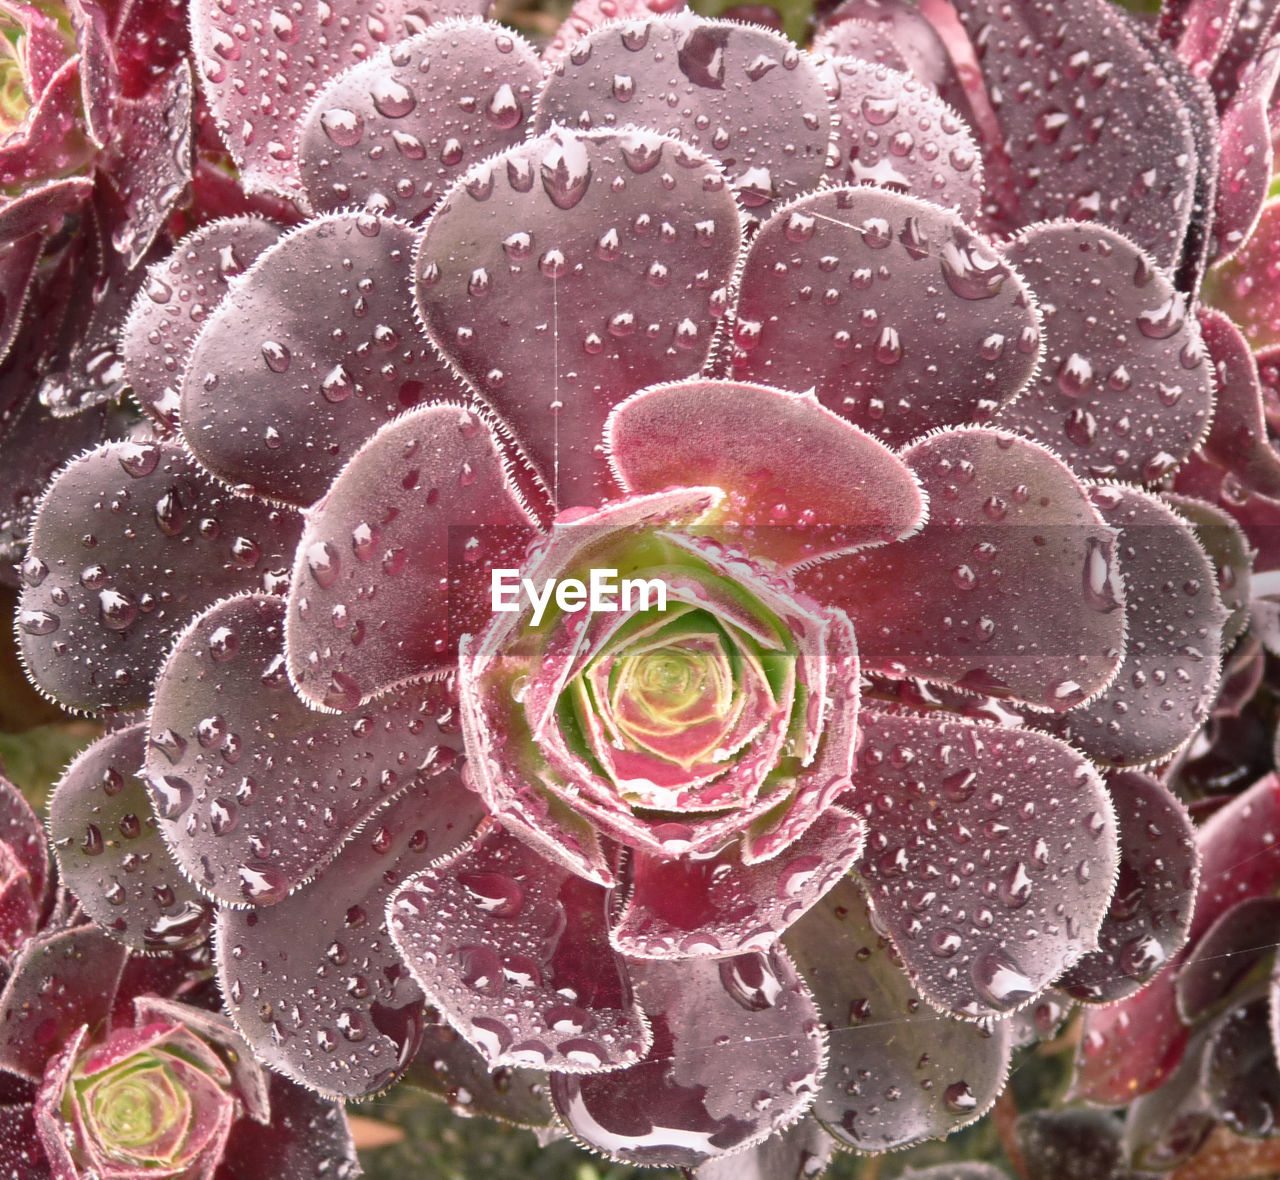 flower, rose - flower, petal, growth, drop, nature, water, fragility, no people, beauty in nature, freshness, plant, close-up, wet, pink color, flower head, raindrop, blooming, day, outdoors